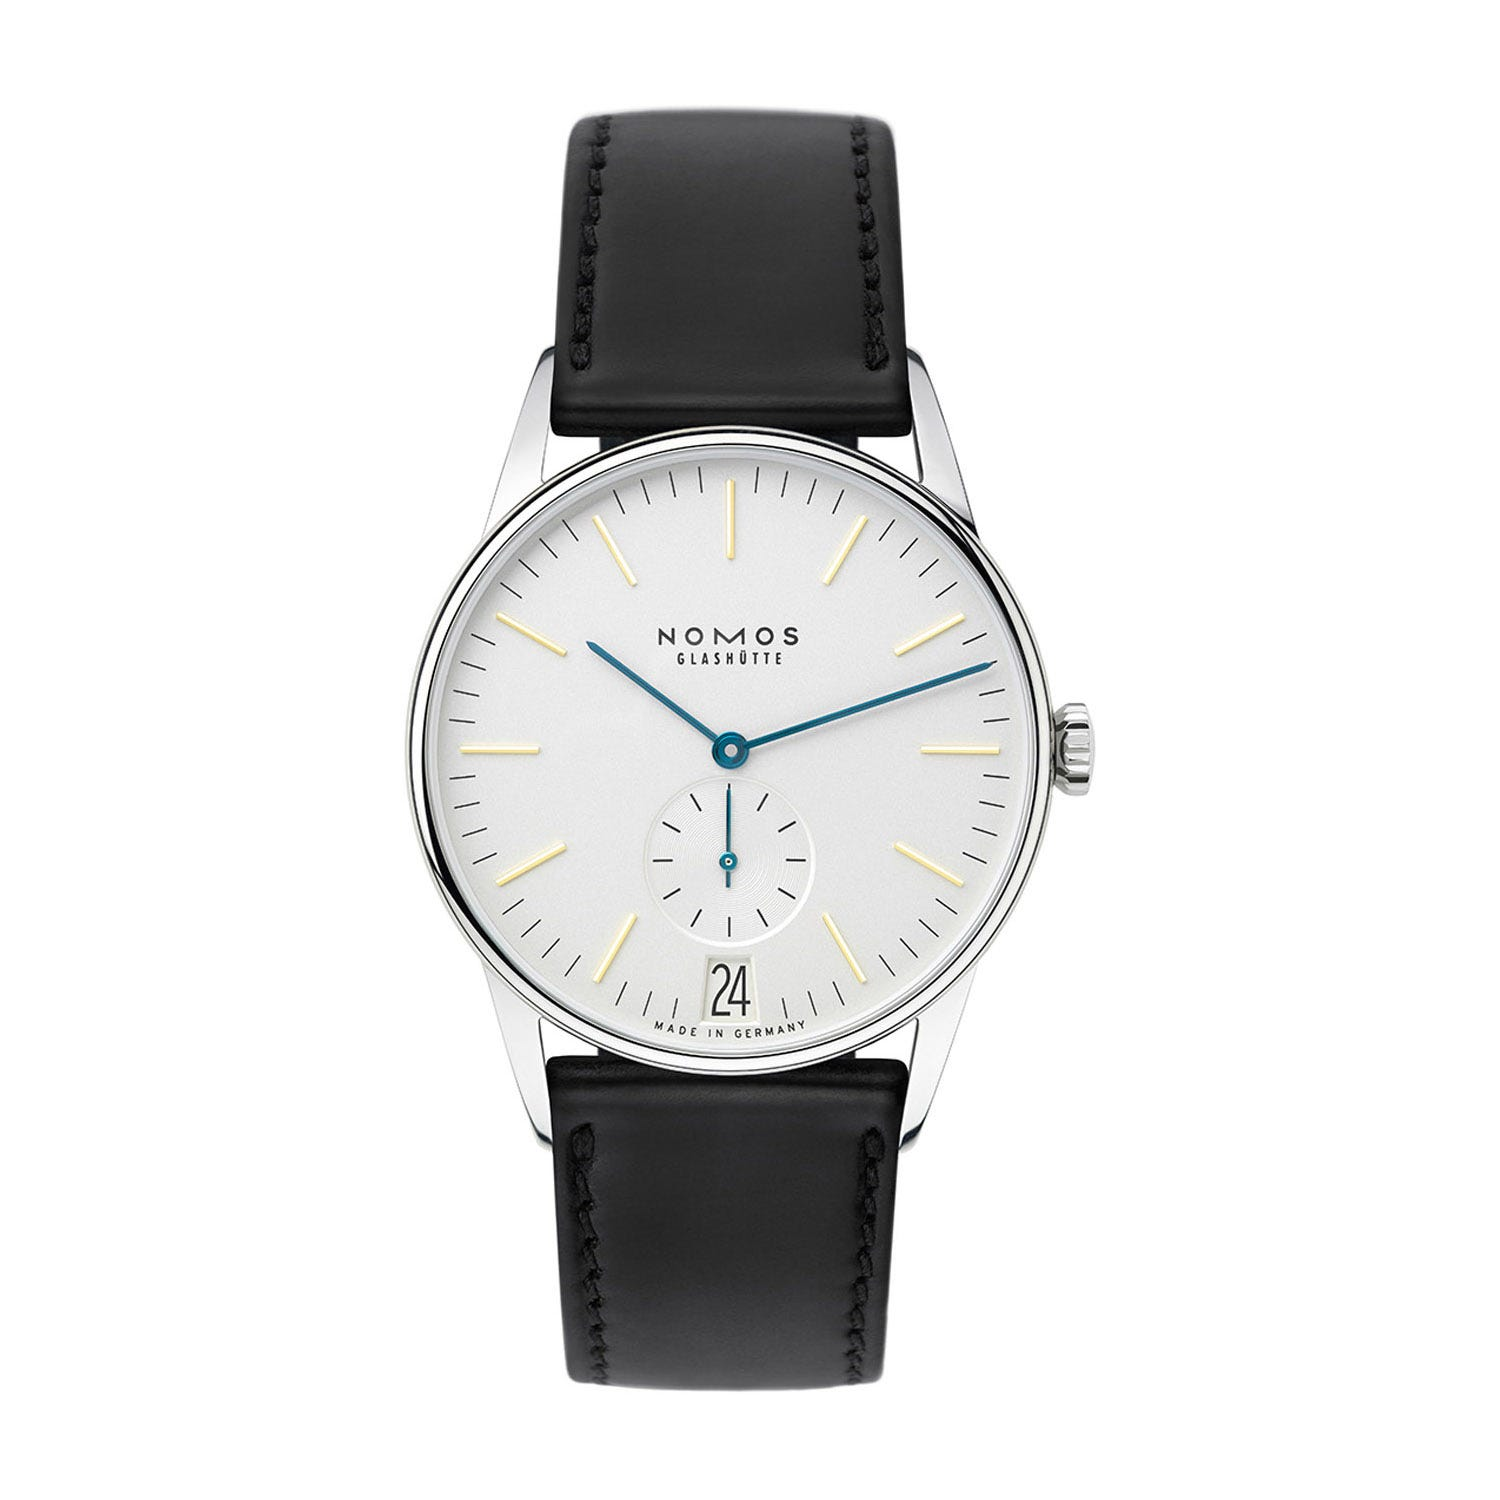 NOMOS Glashutte Orion 38mm White Dial Black Leather Unisex Watch